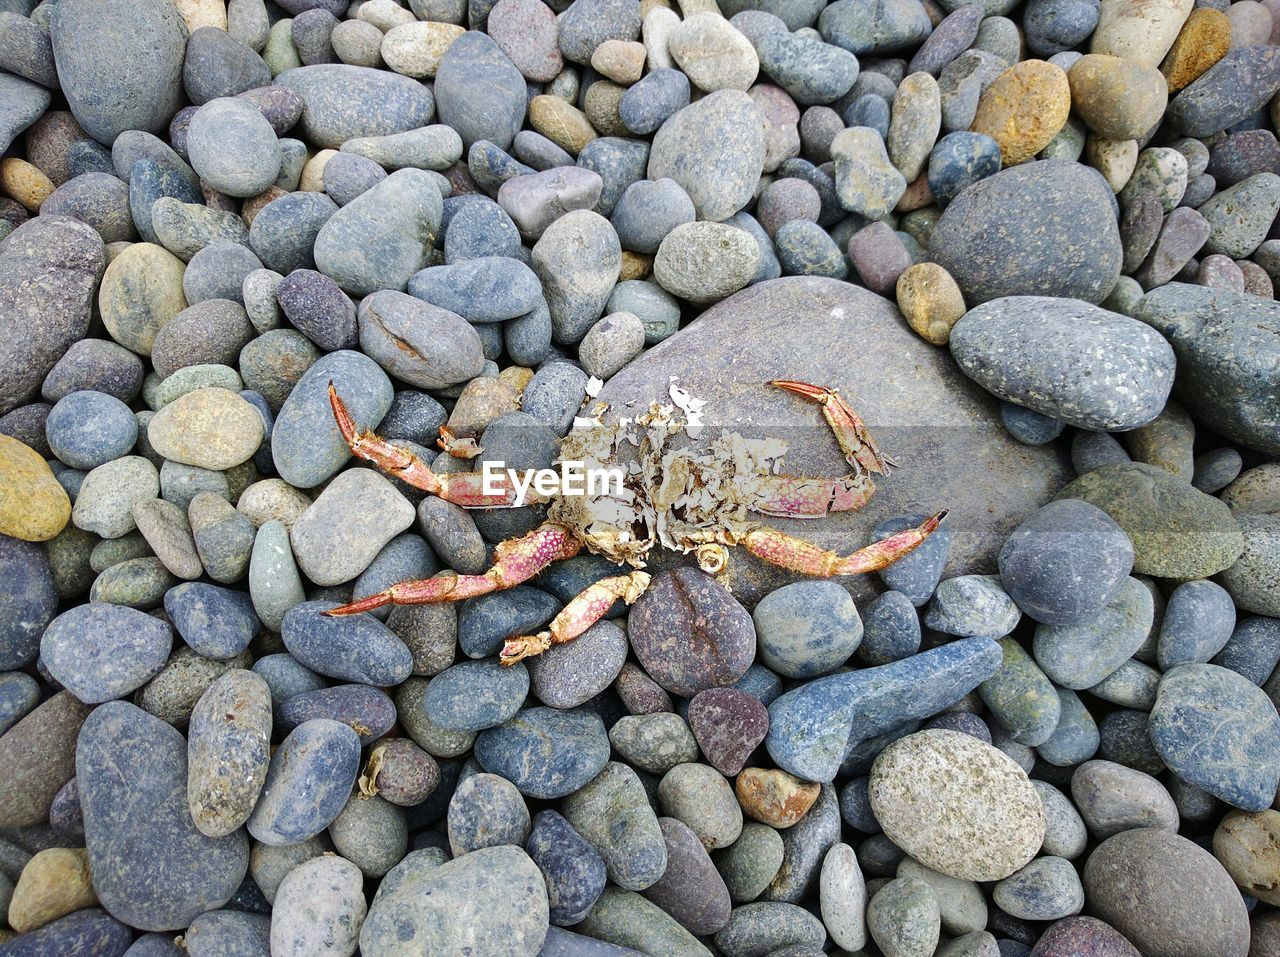 Directly Above Shot Of Dead Crab On Pebbles At Beach